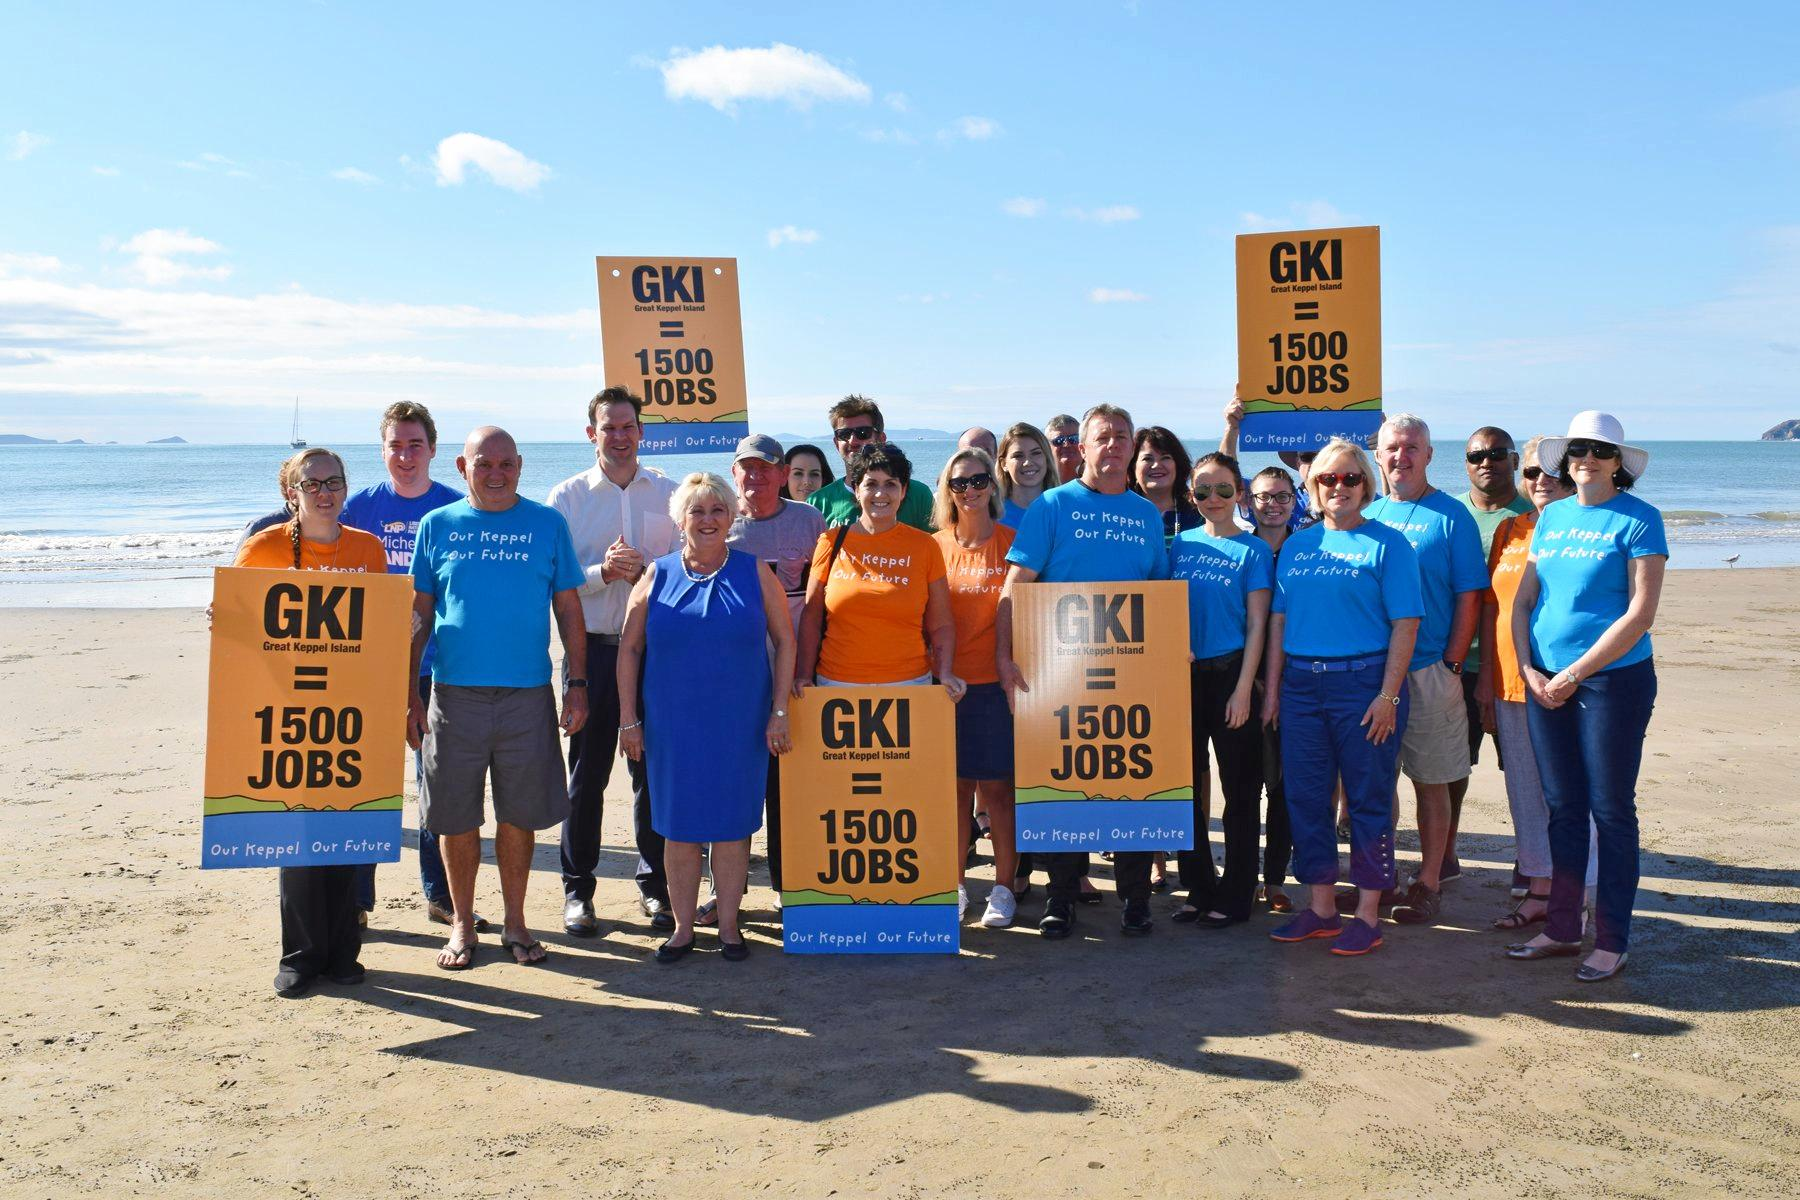 Our Keppel Our Future group were supporting the announcement made by Member for Capricornia Michelle Landry and Senator Matt Canavan to give $220,000 in funding towards building a retaining wall on Great Keppel Island's Putney Beach, if the Turnbull Government is re-elected.  Photo Amy Haydock / The Morning Bulletin